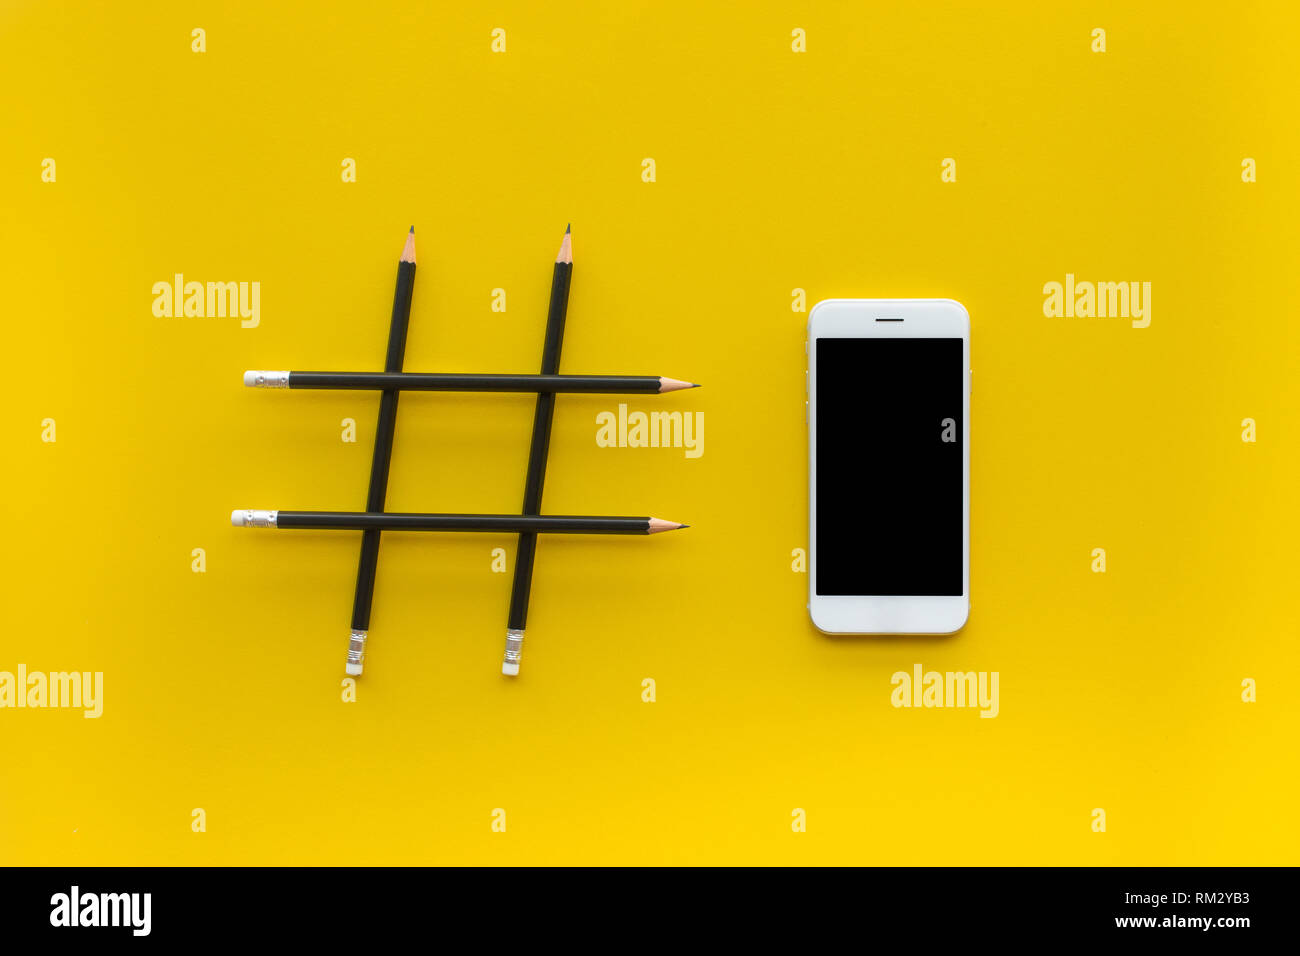 Social media and creativity concepts with Hashtag sign made of pencil and smartphone.digital marketing images.power of conversation. - Stock Image